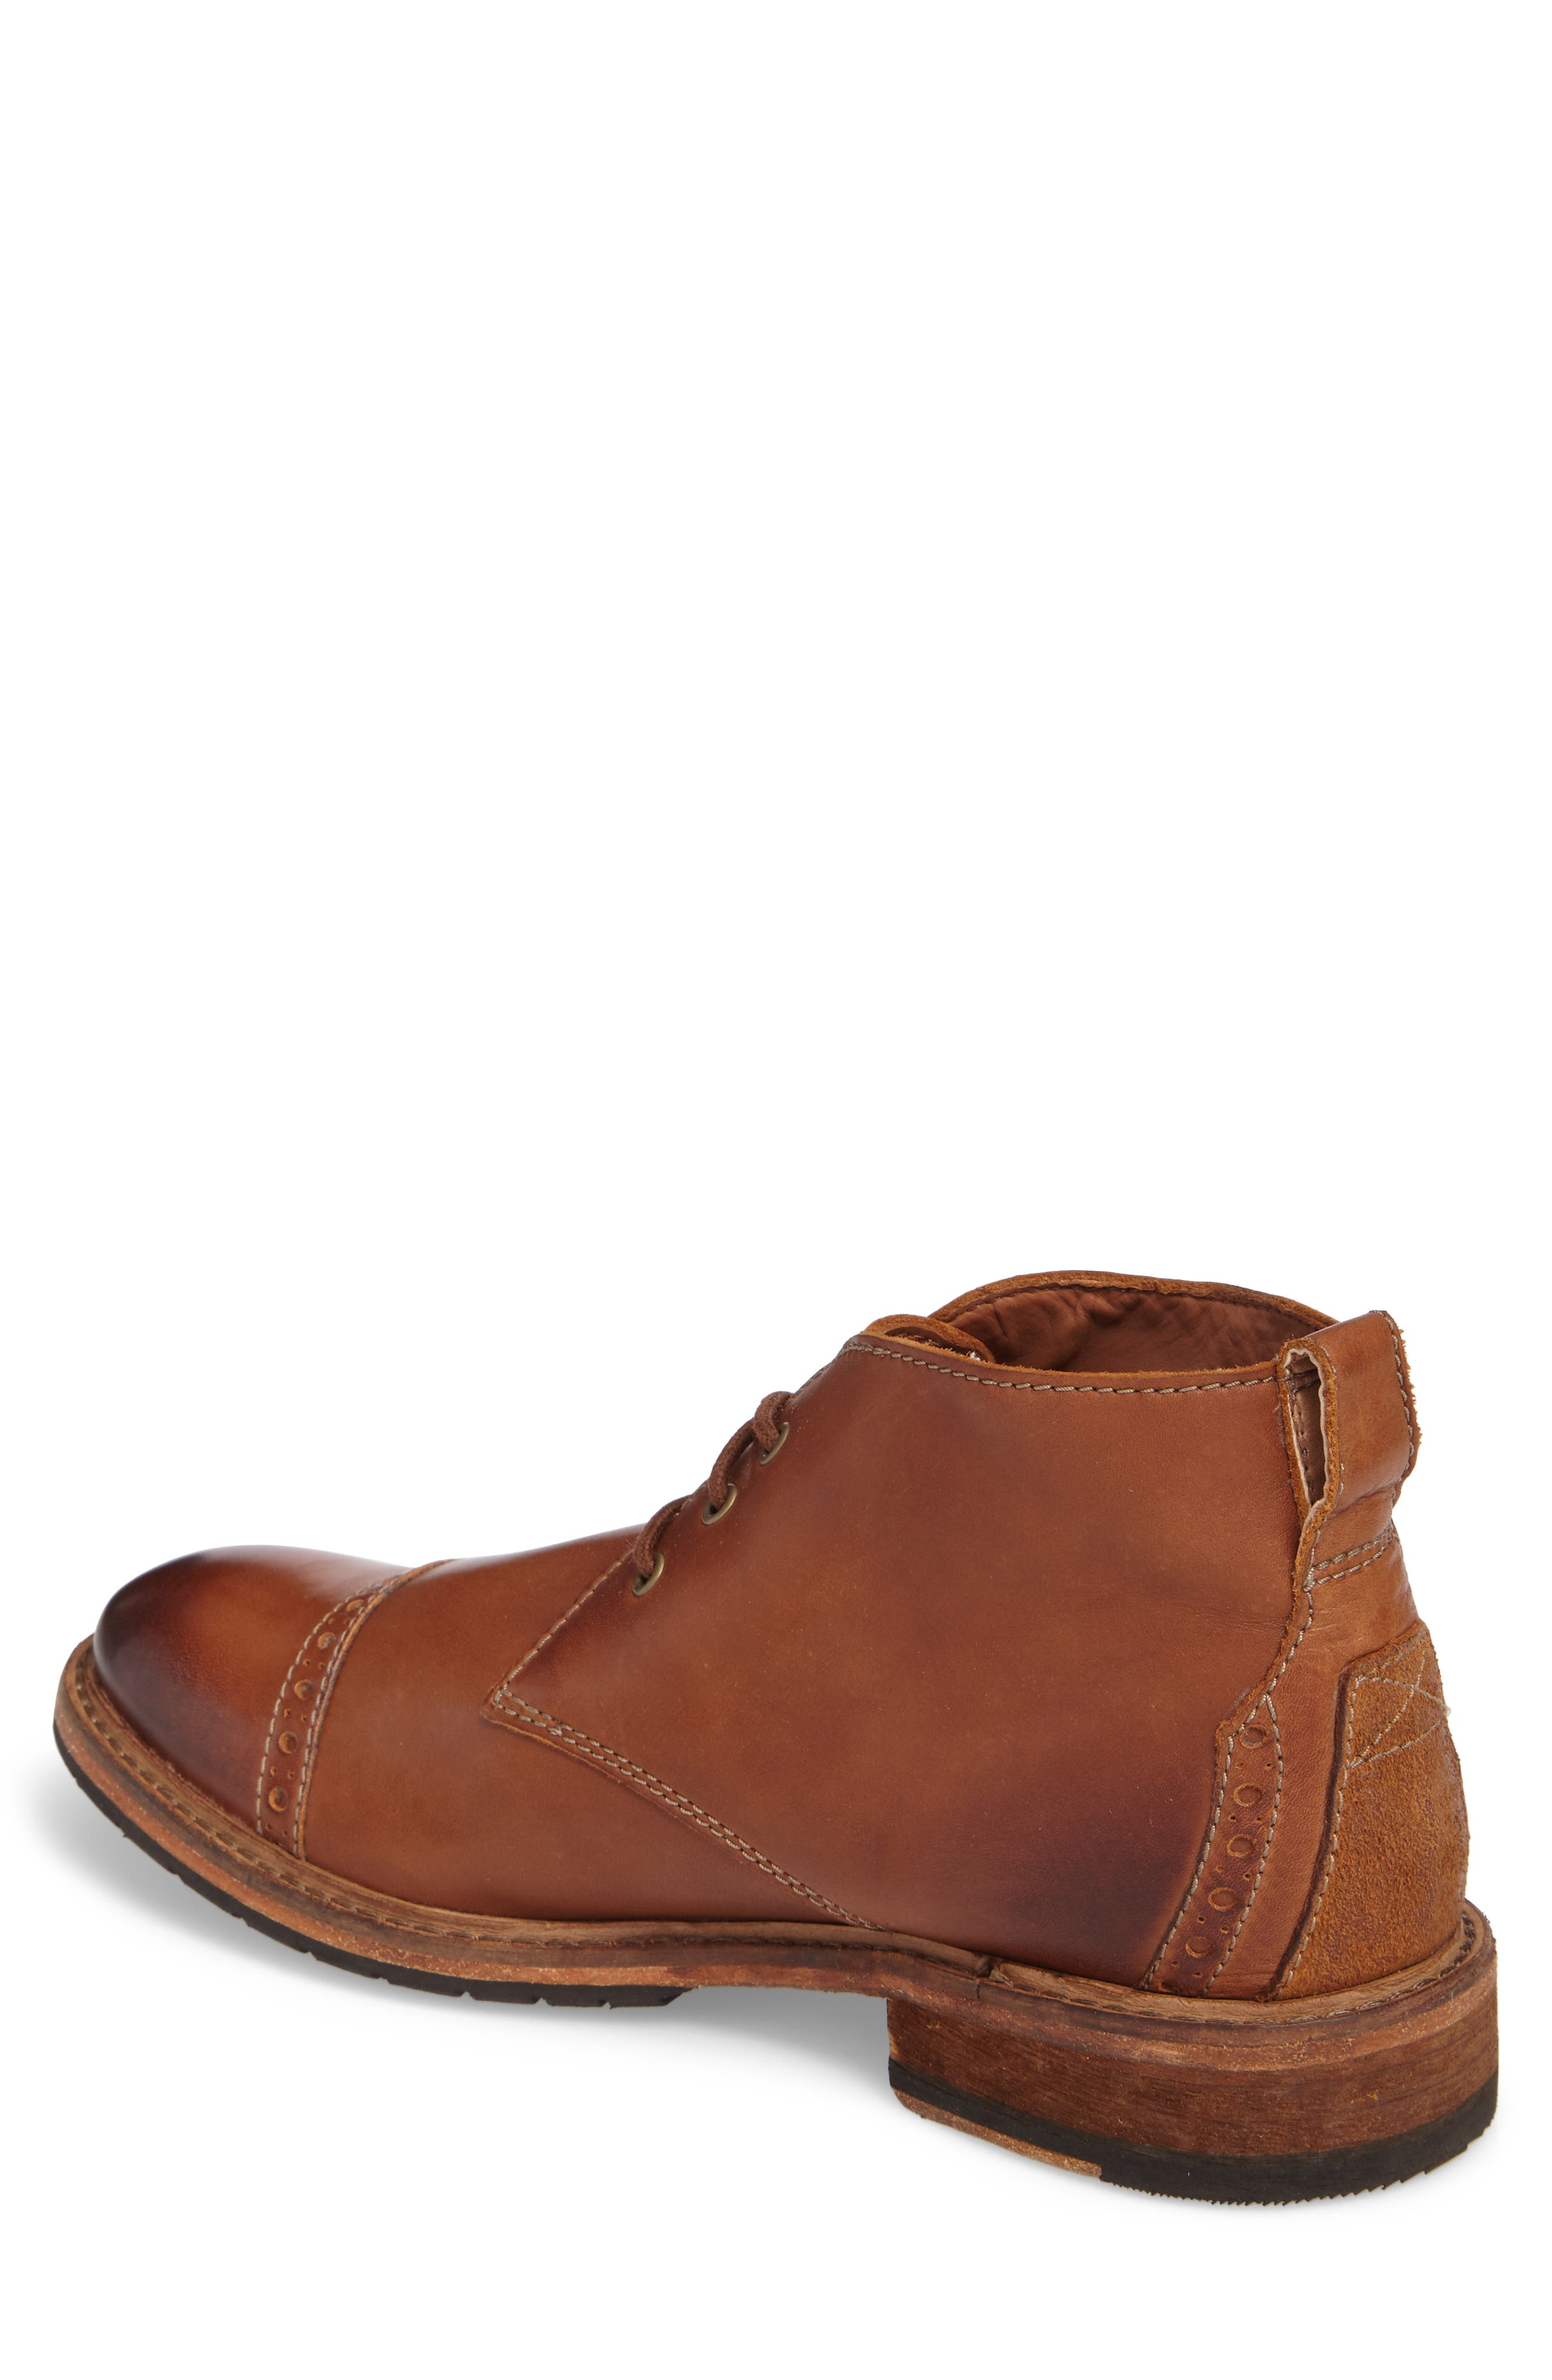 Clarkdale Water Resistant Chukka Boot,                             Alternate thumbnail 2, color,                             Dark Tan Leather